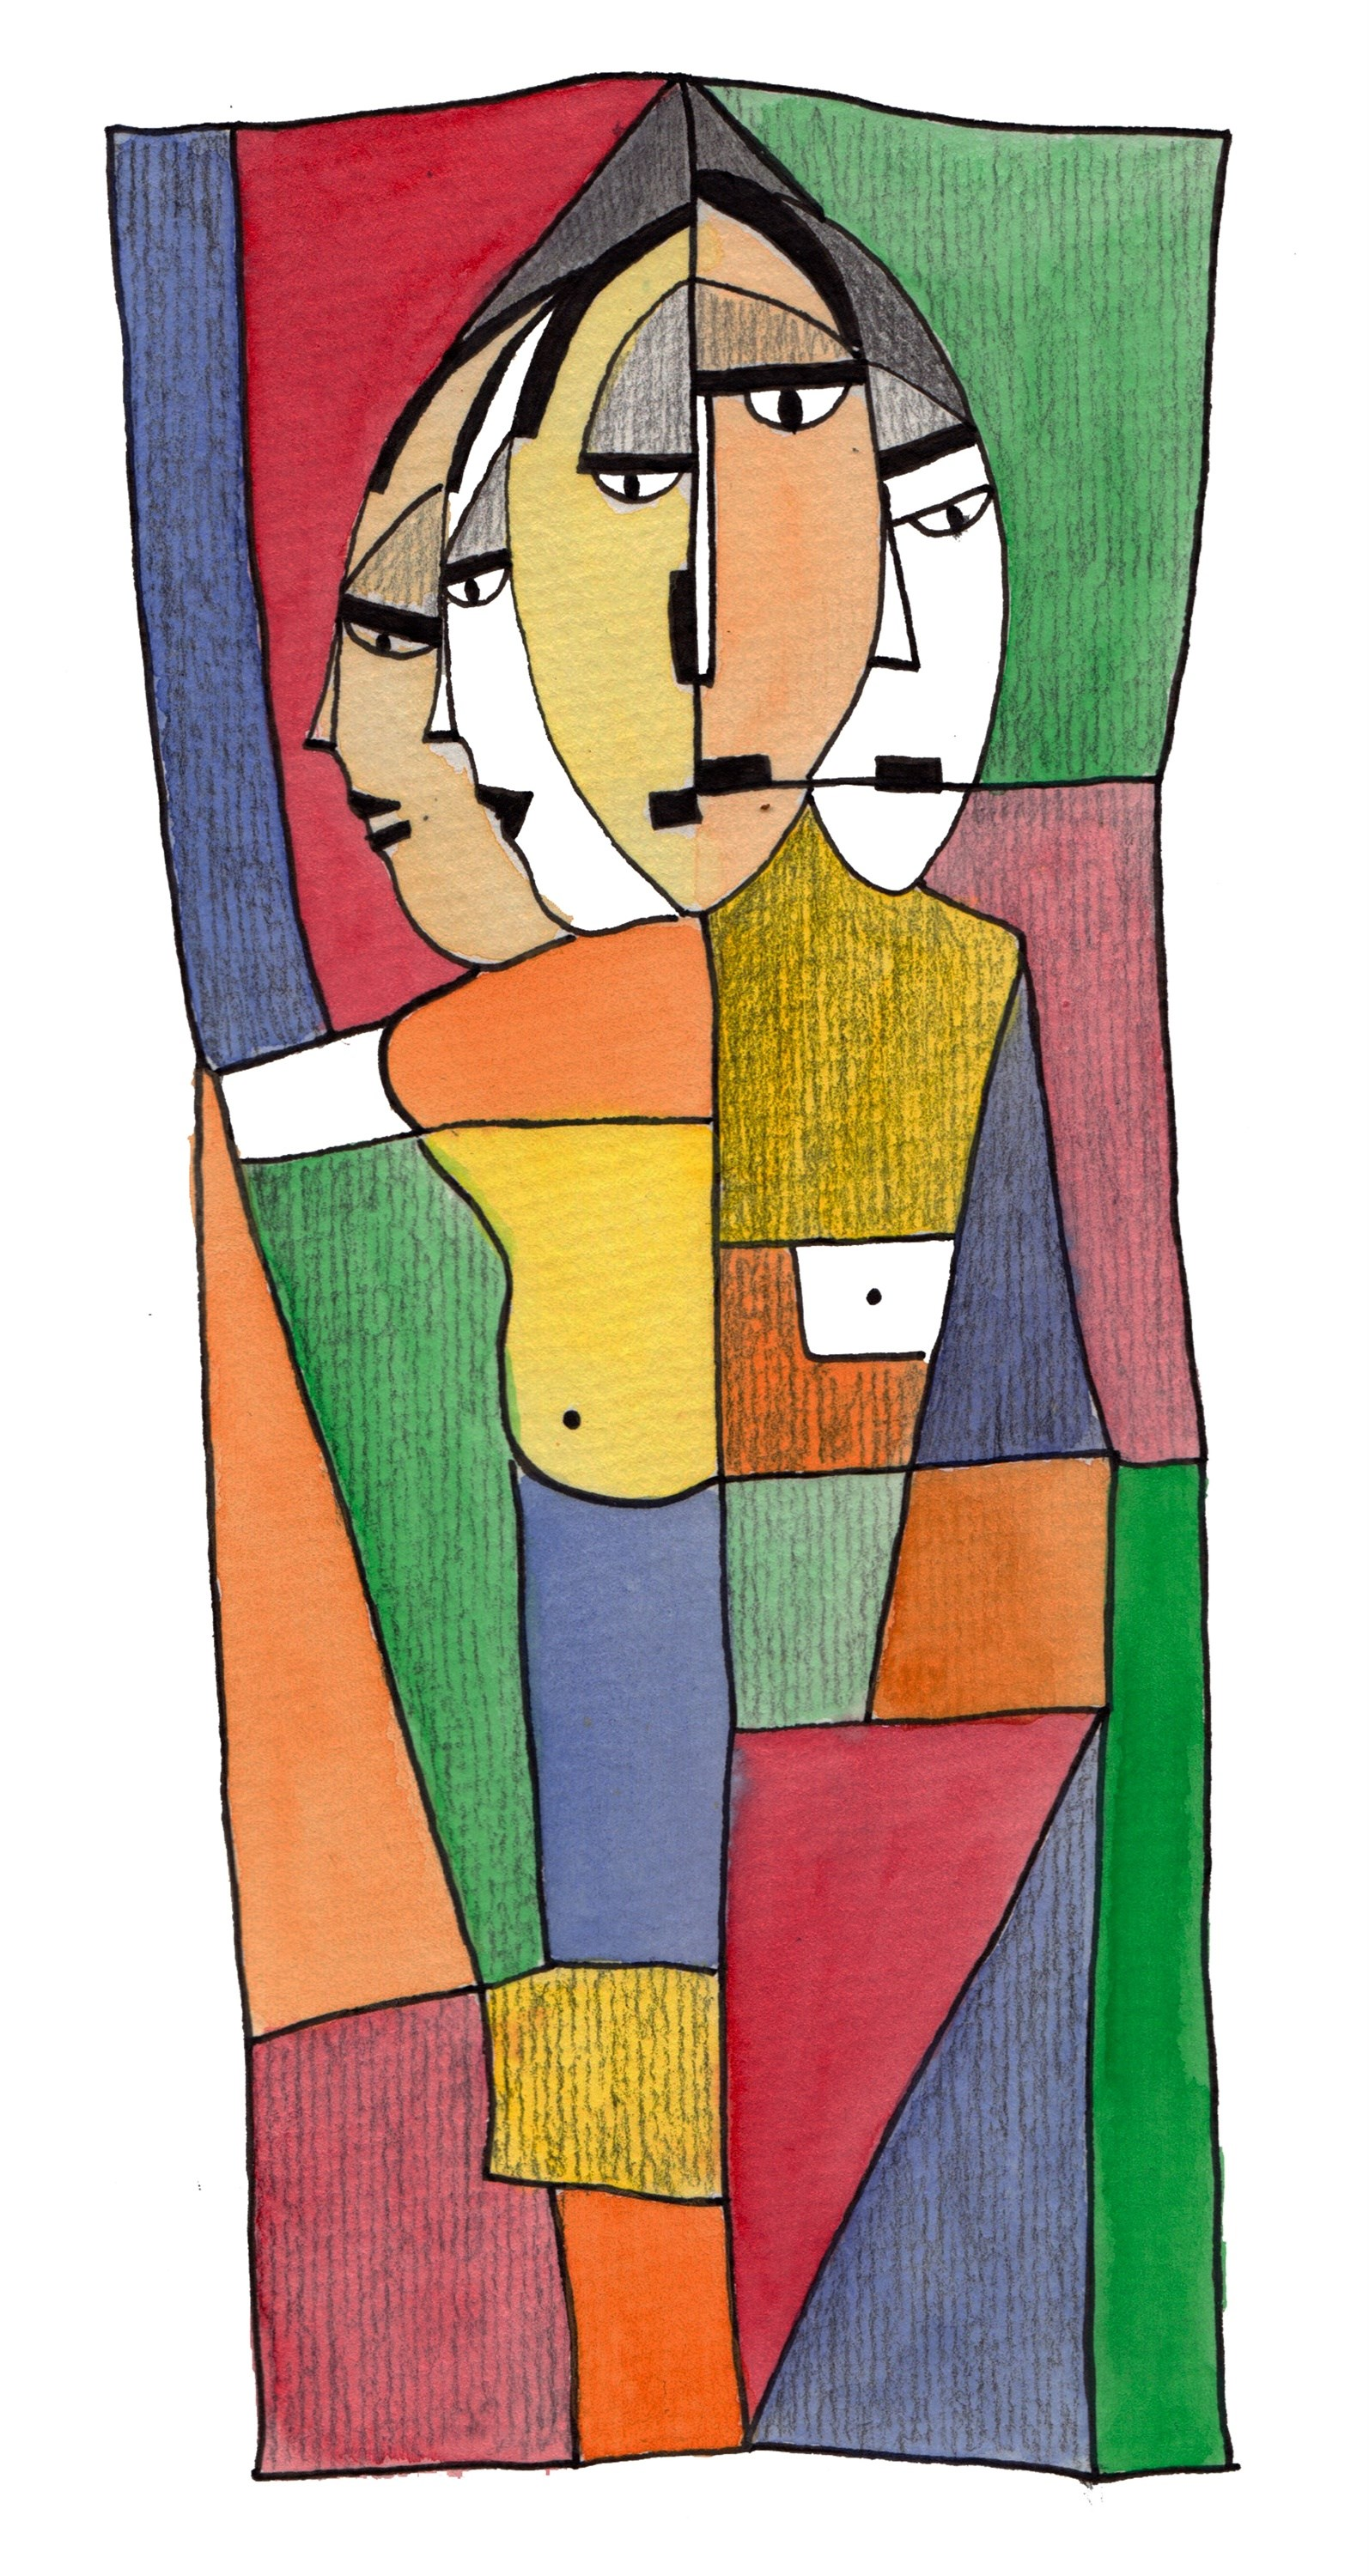 5 primos, original Abstract Ink Drawing and Illustration by Inês Peres